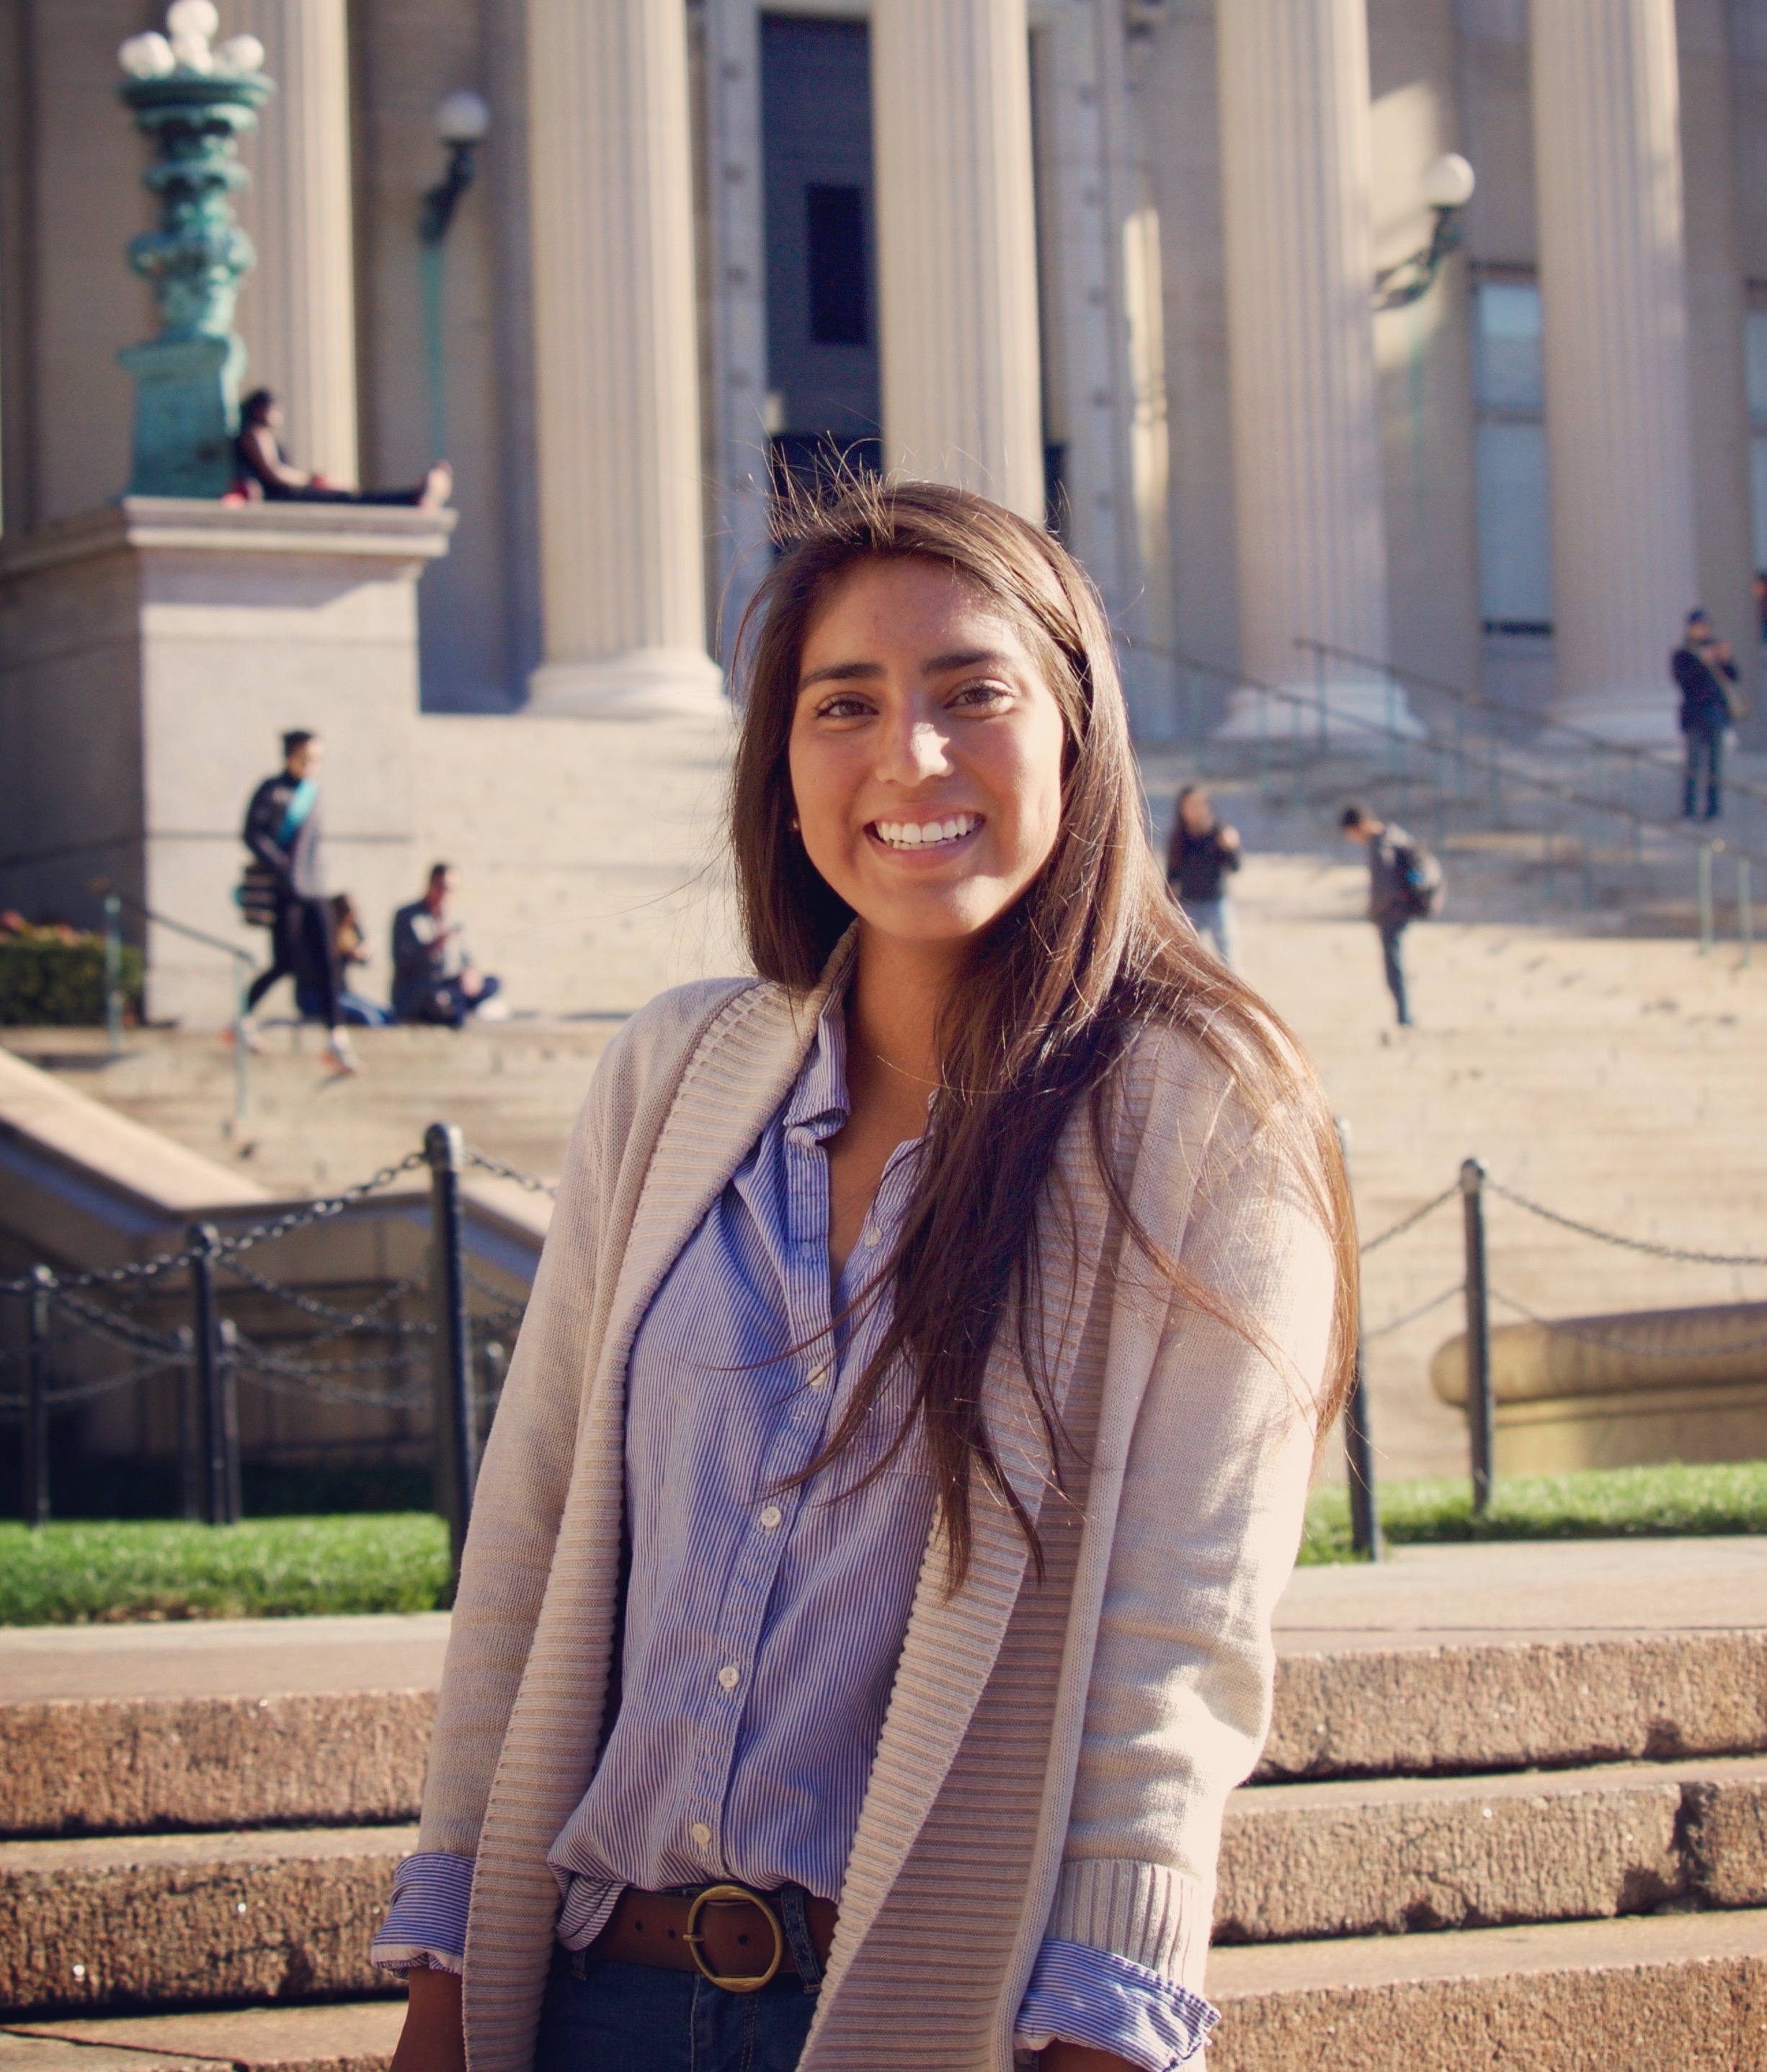 Alondra Aguilar - Director of Public RelationsPronouns: She/her